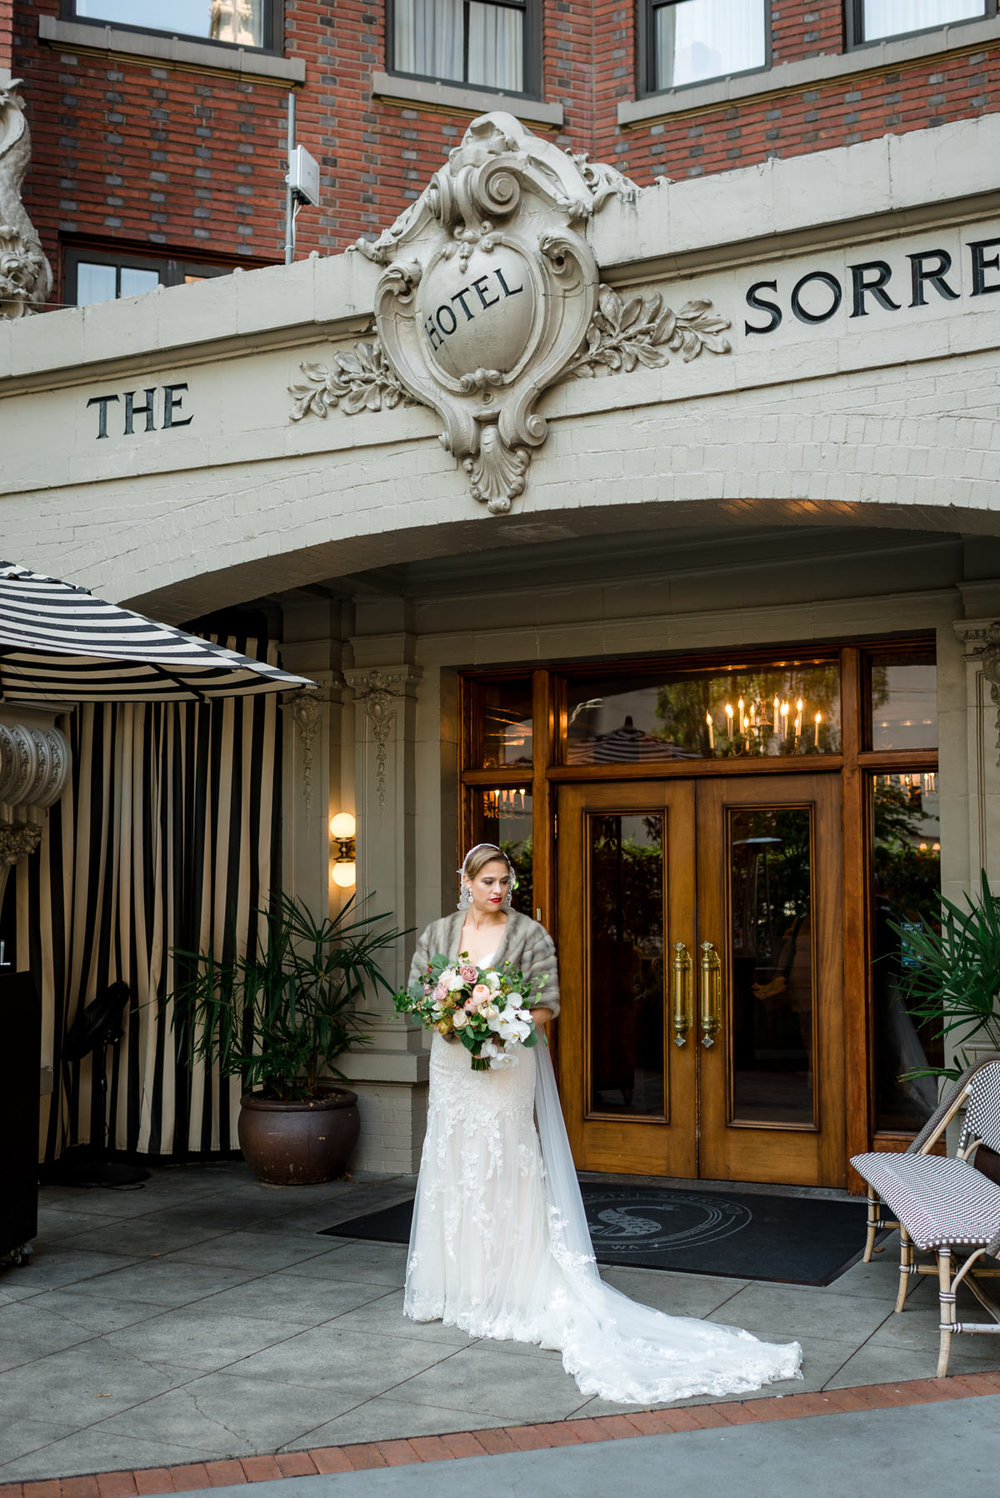 Andrew Tat - Documentary Wedding Photography - Hotel Sorrento - Seattle, Washington -Jessica & Paul - 14.jpg